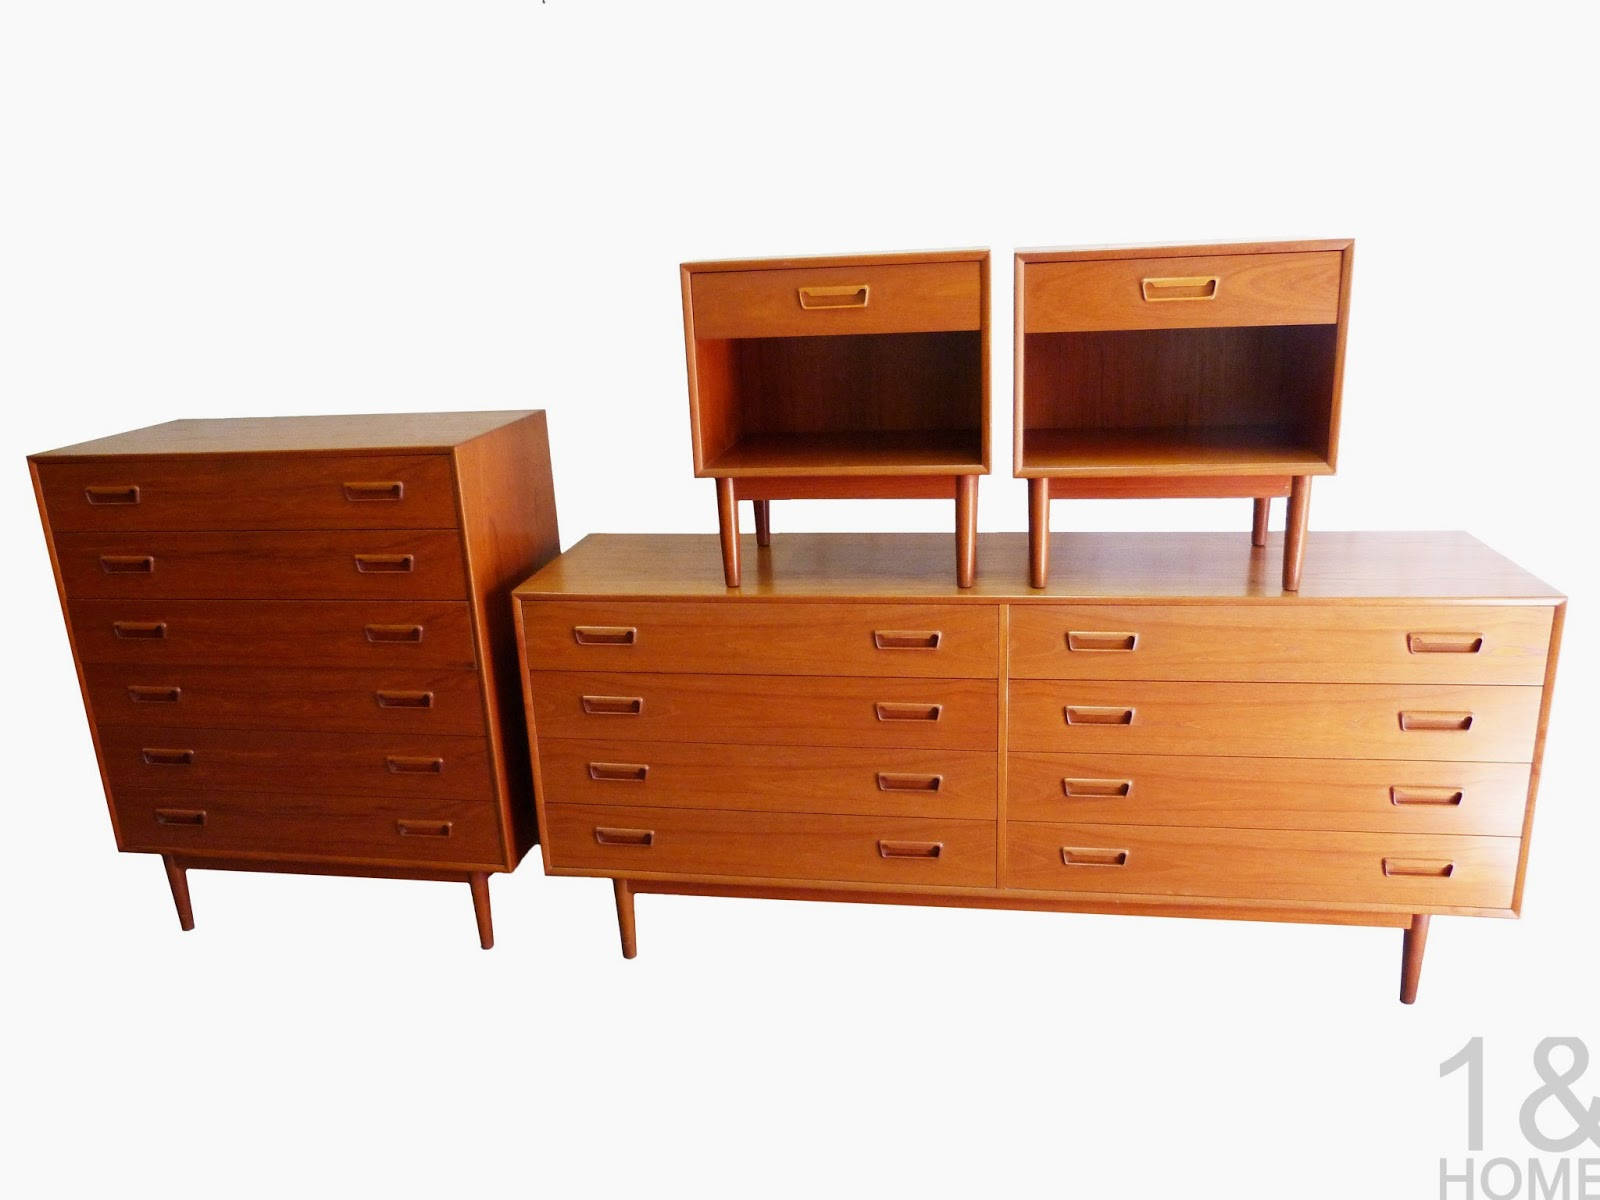 Modern Mid Century Danish Vintage Furniture Shop Used Restoration Repai